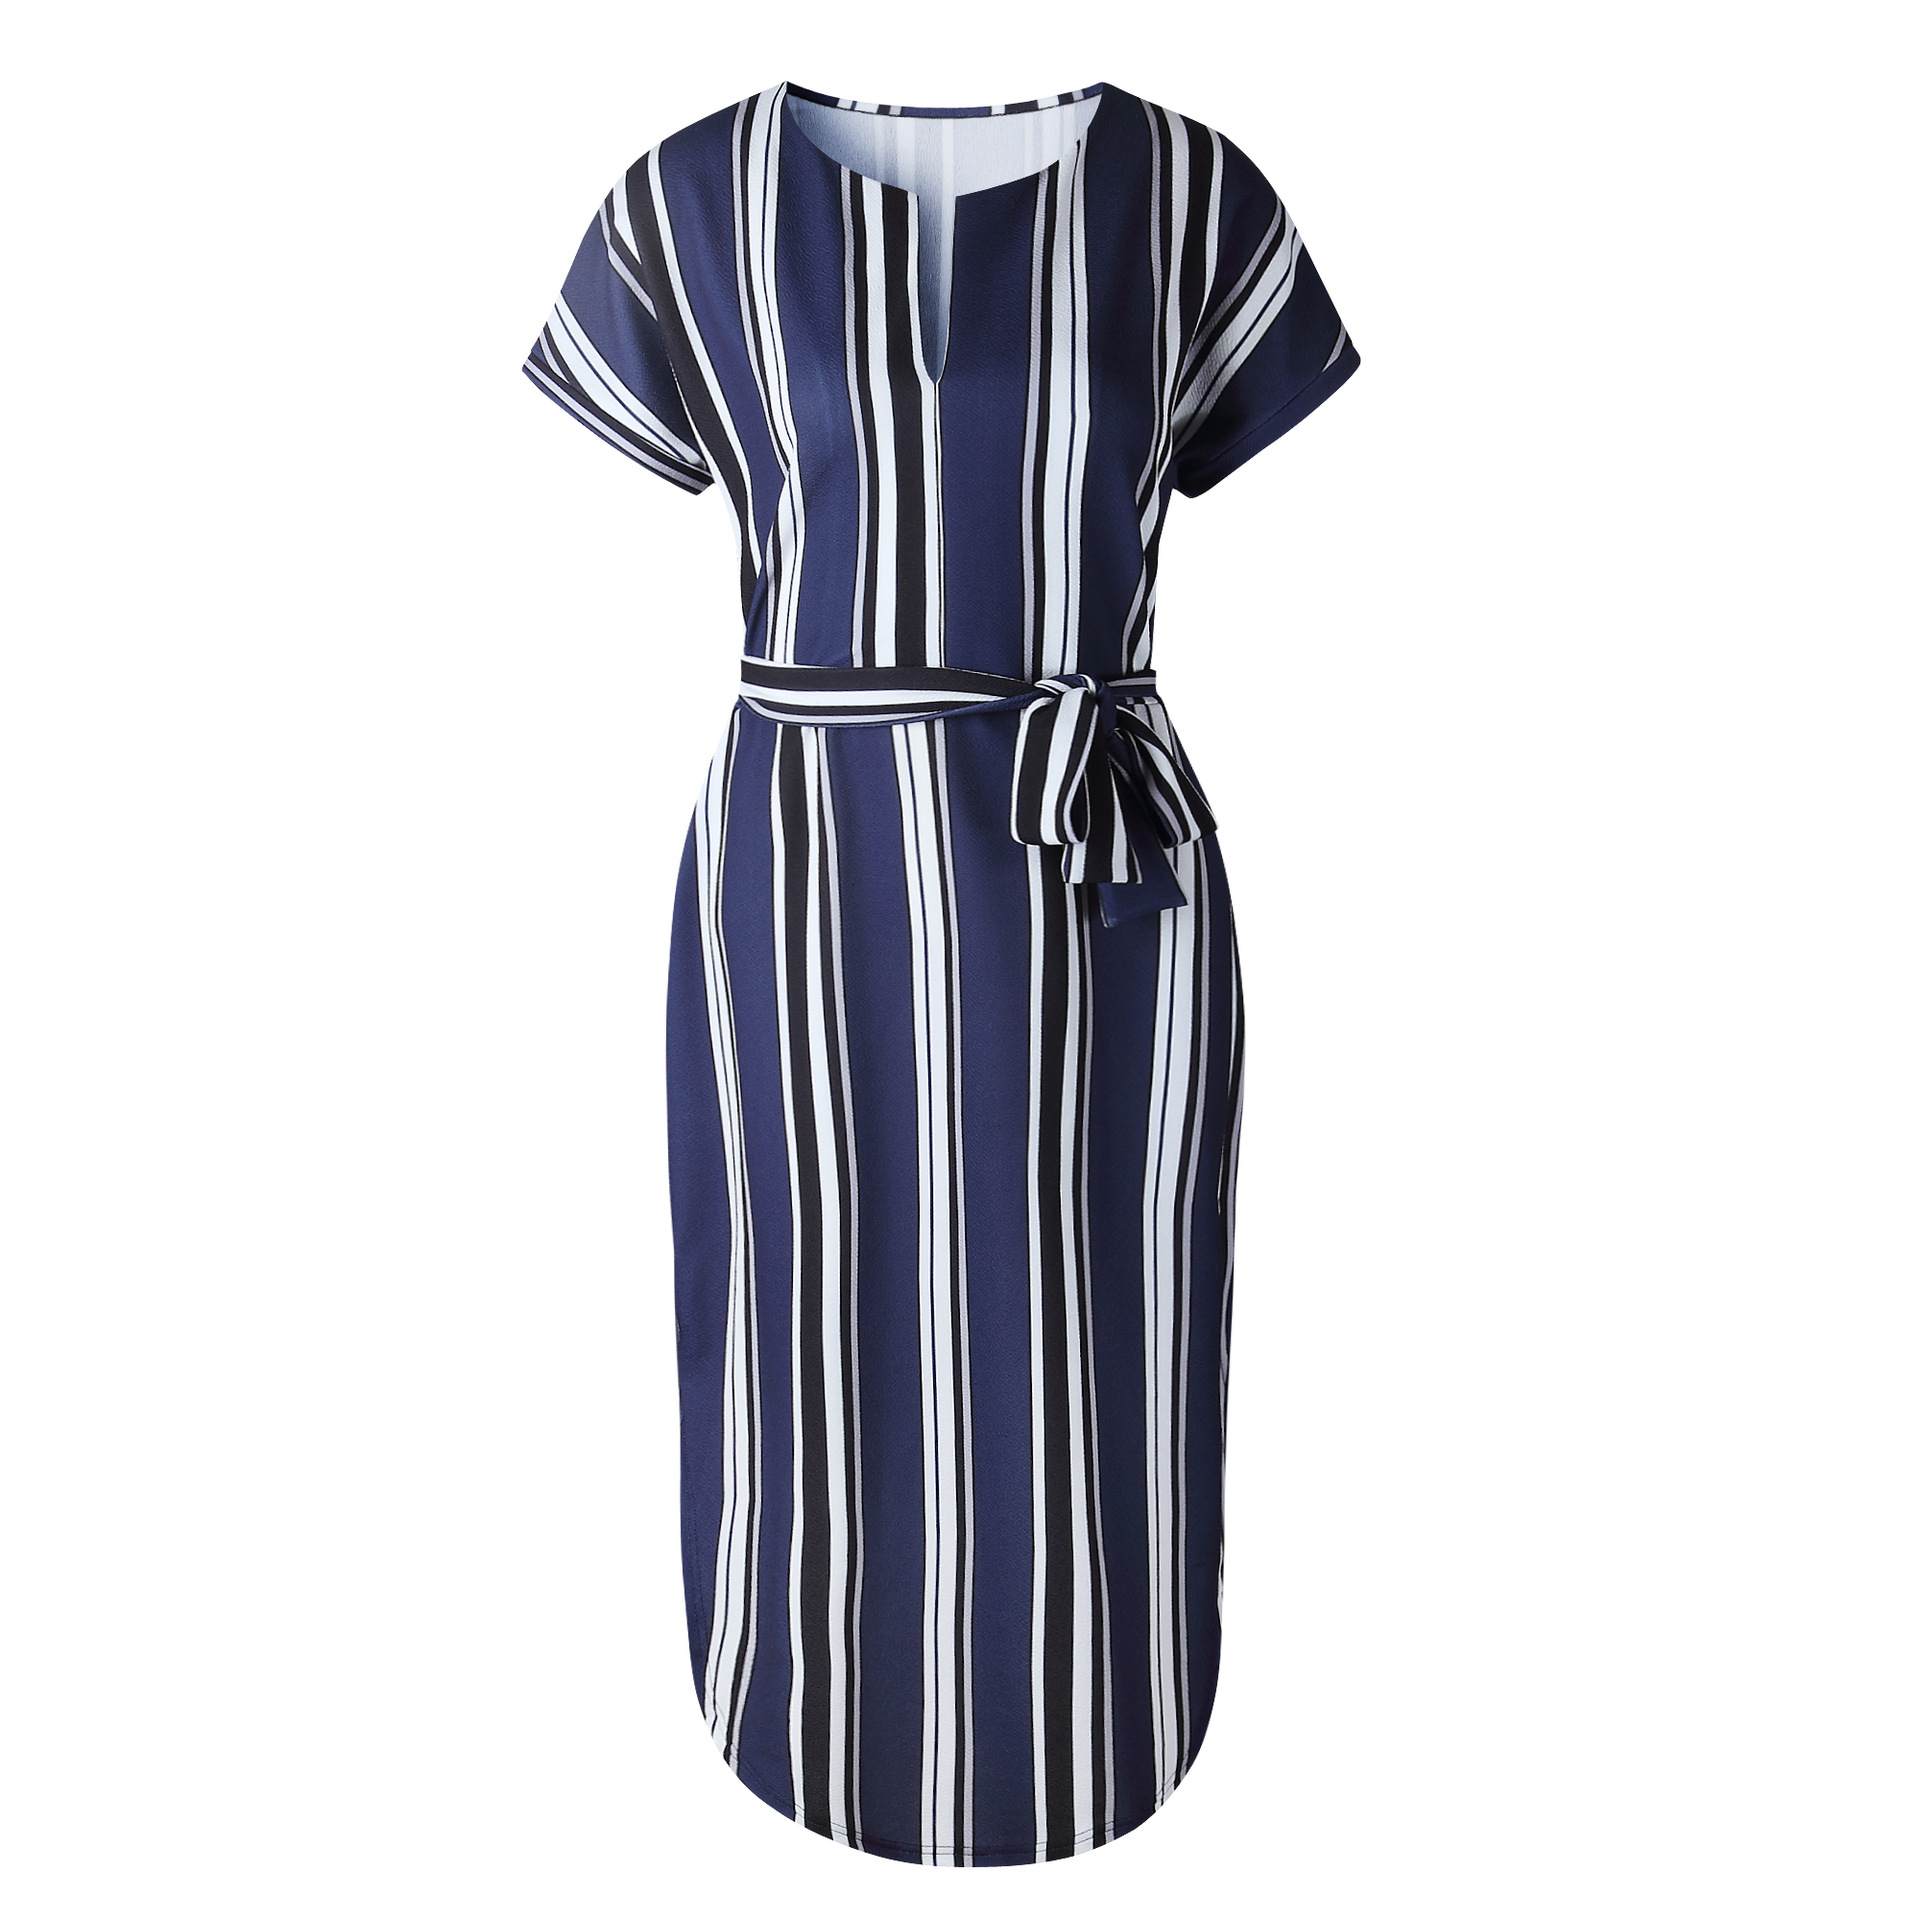 2018 Summer Dress Women Print V Neck Short Sleeve Robe Female Dresses Casual Sashes Midi Dress Ladies Elegant Vestidos Dropship 35